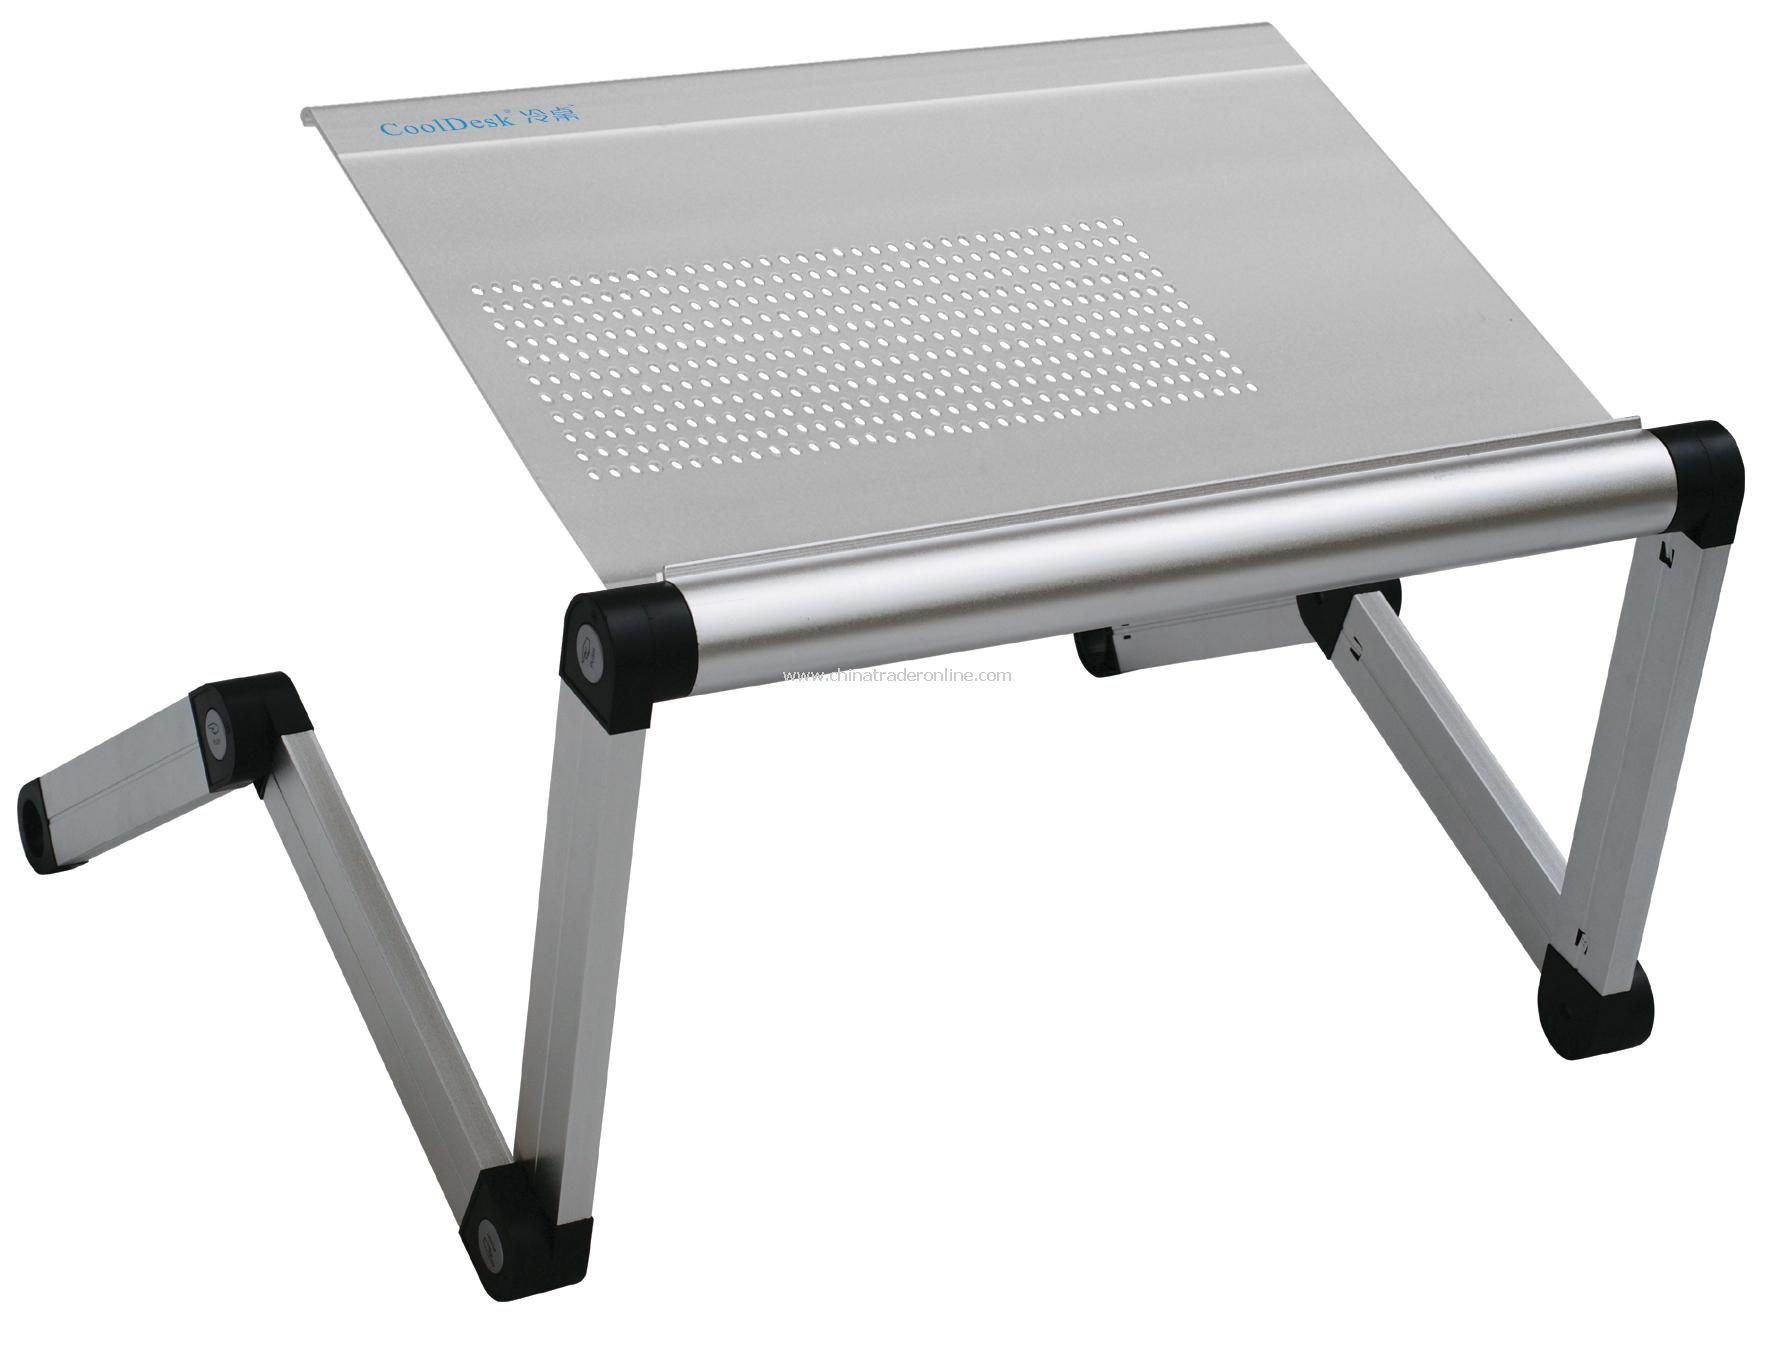 Foldable Aluminum Alloy Table Stand for Notebook Laptop